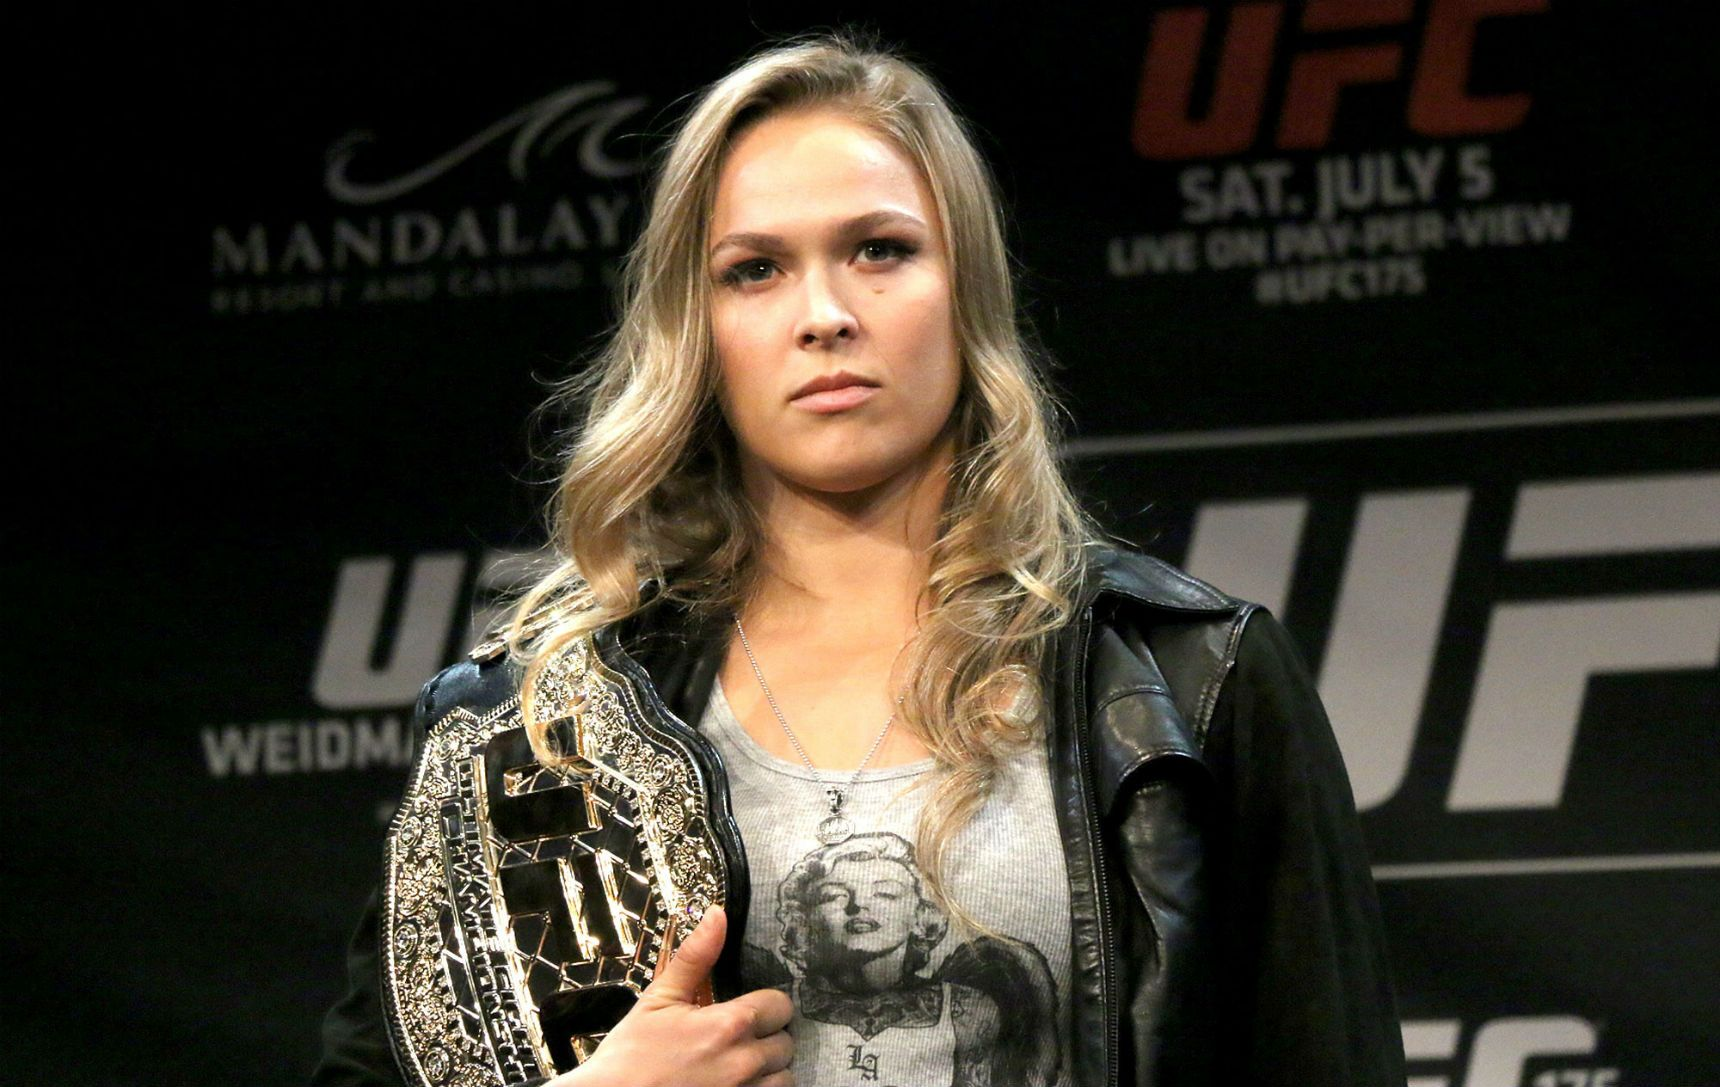 10 Things You Didn't Know About Ronda Rousey